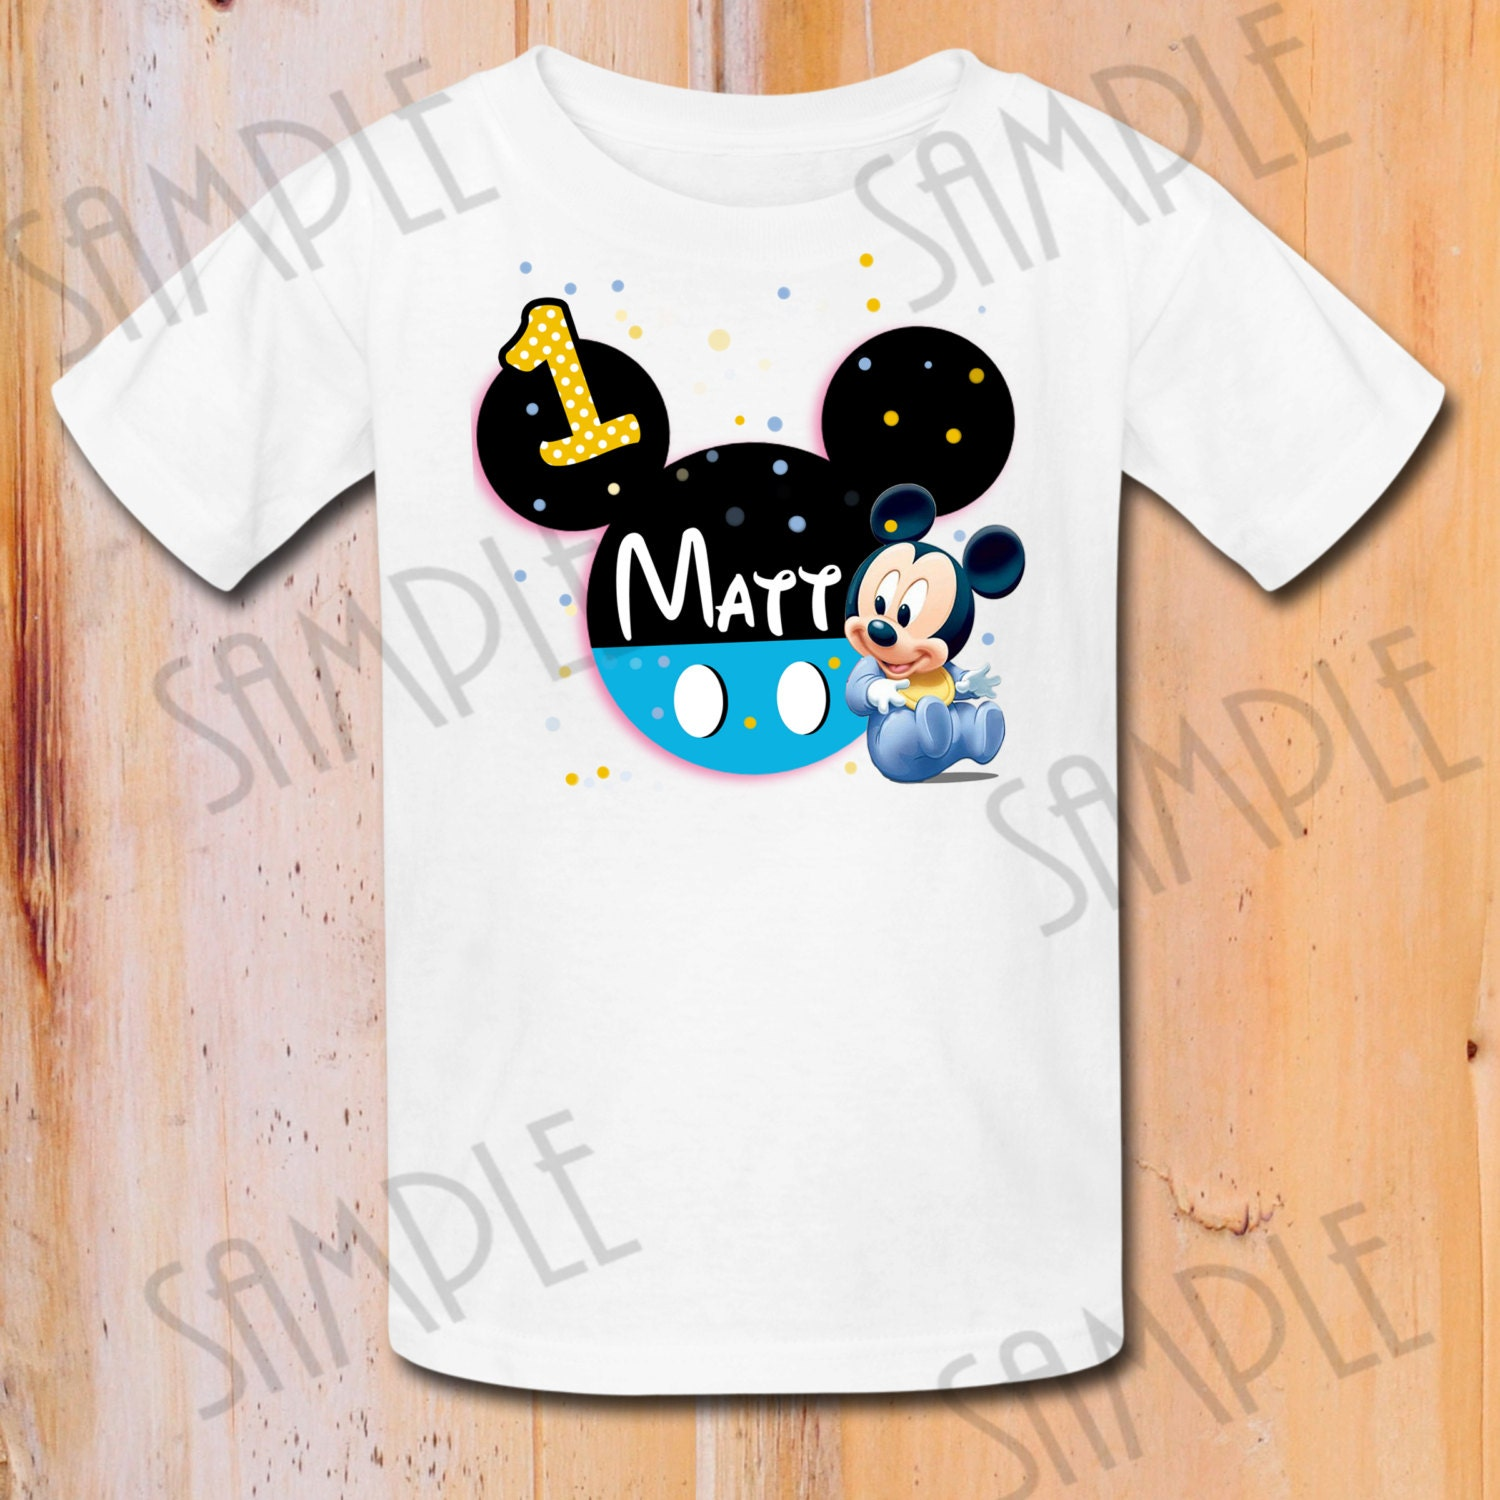 Mickey Mouse Shirts. invalid category id. Mickey Mouse Shirts. Distressed Classic Mickey T-Shirt. Product Image. Price $ Product Title. We focused on the bestselling products customers like you want most in categories like Baby, Clothing, Electronics and Health & Beauty. Marketplace items.